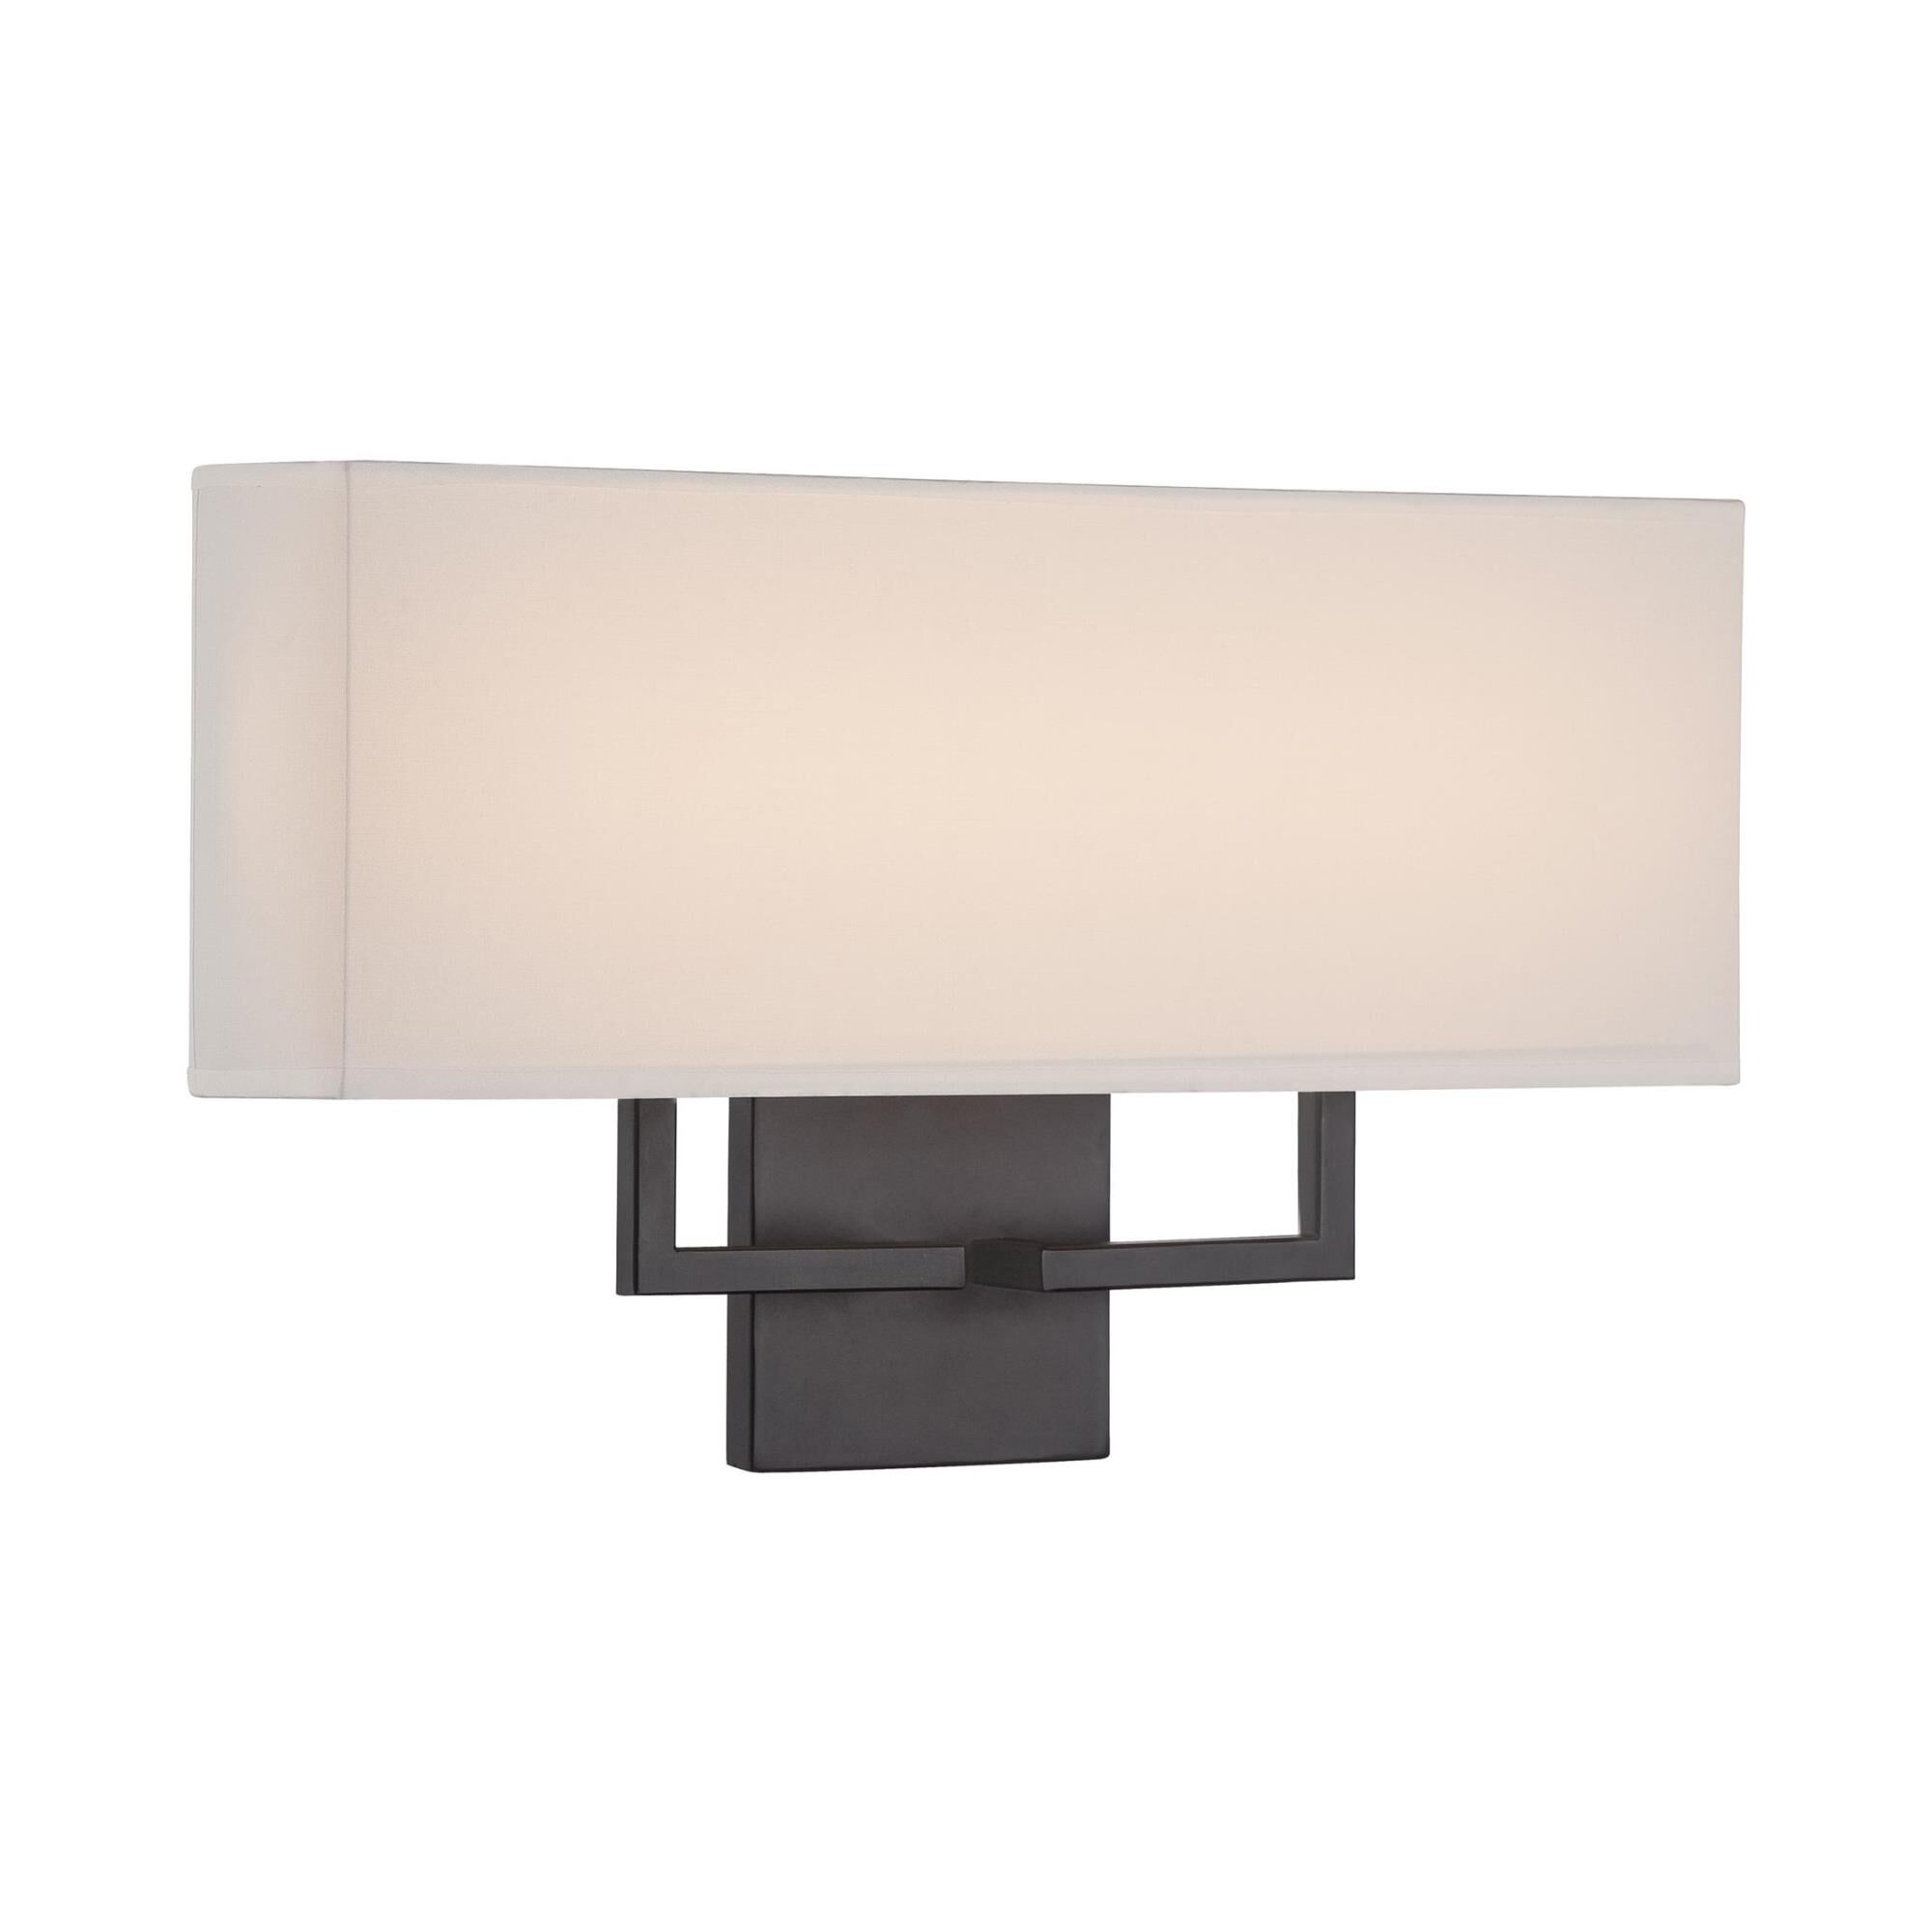 Kovacs 16 Inch Wall Sconce - P472-617-l - Transitional